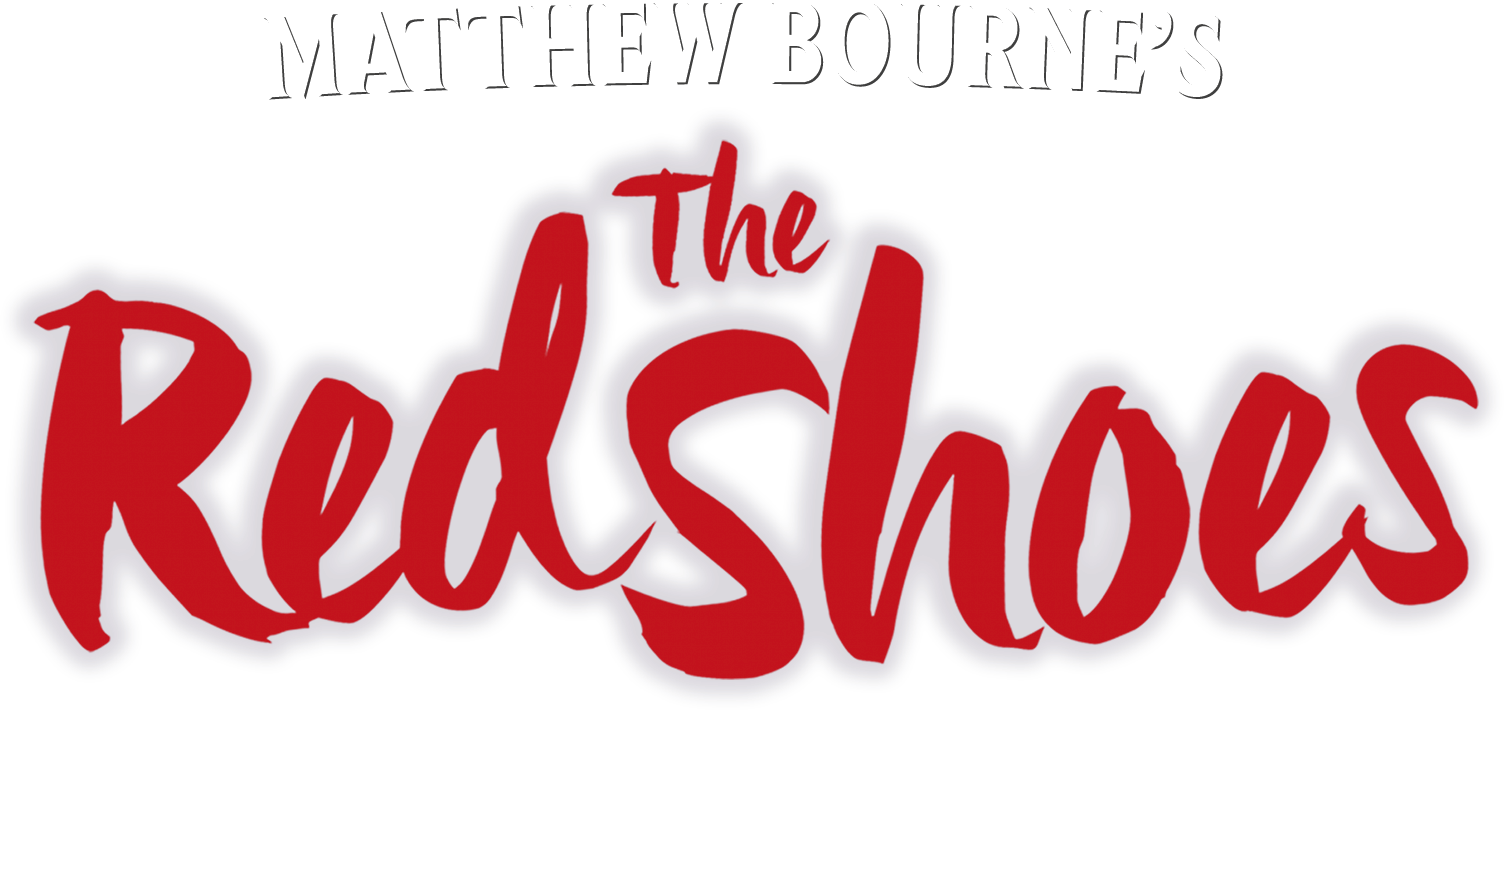 Matthew Bourne's The Red Shoes | About the Event | Worldwide Cinema Release from May 2020